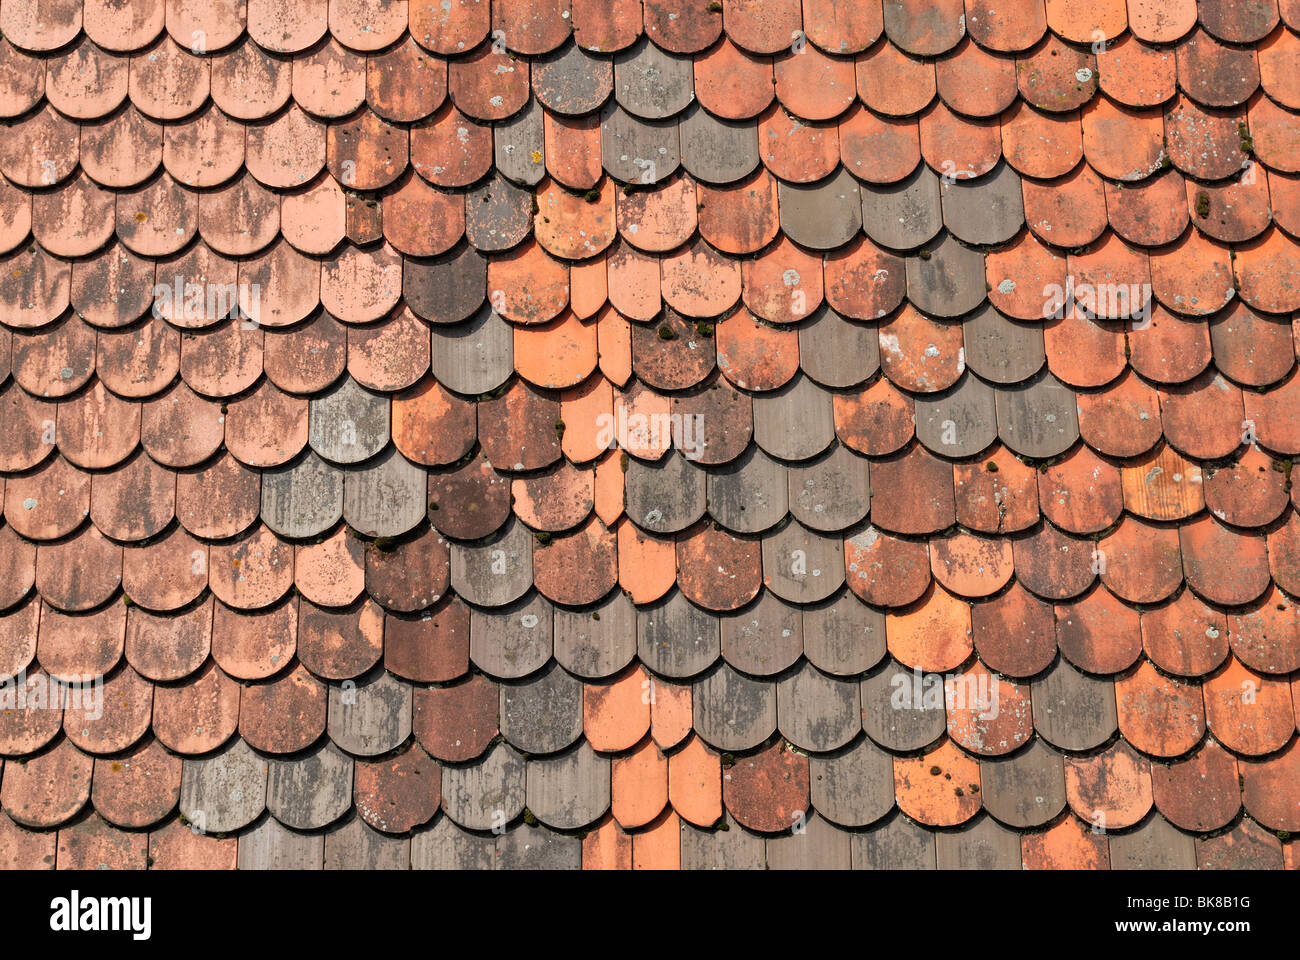 Beaver tail-roofing, detail with new tiles, Rothenburg ob der Tauber, Bavaria, Germany, Europe Stock Photo